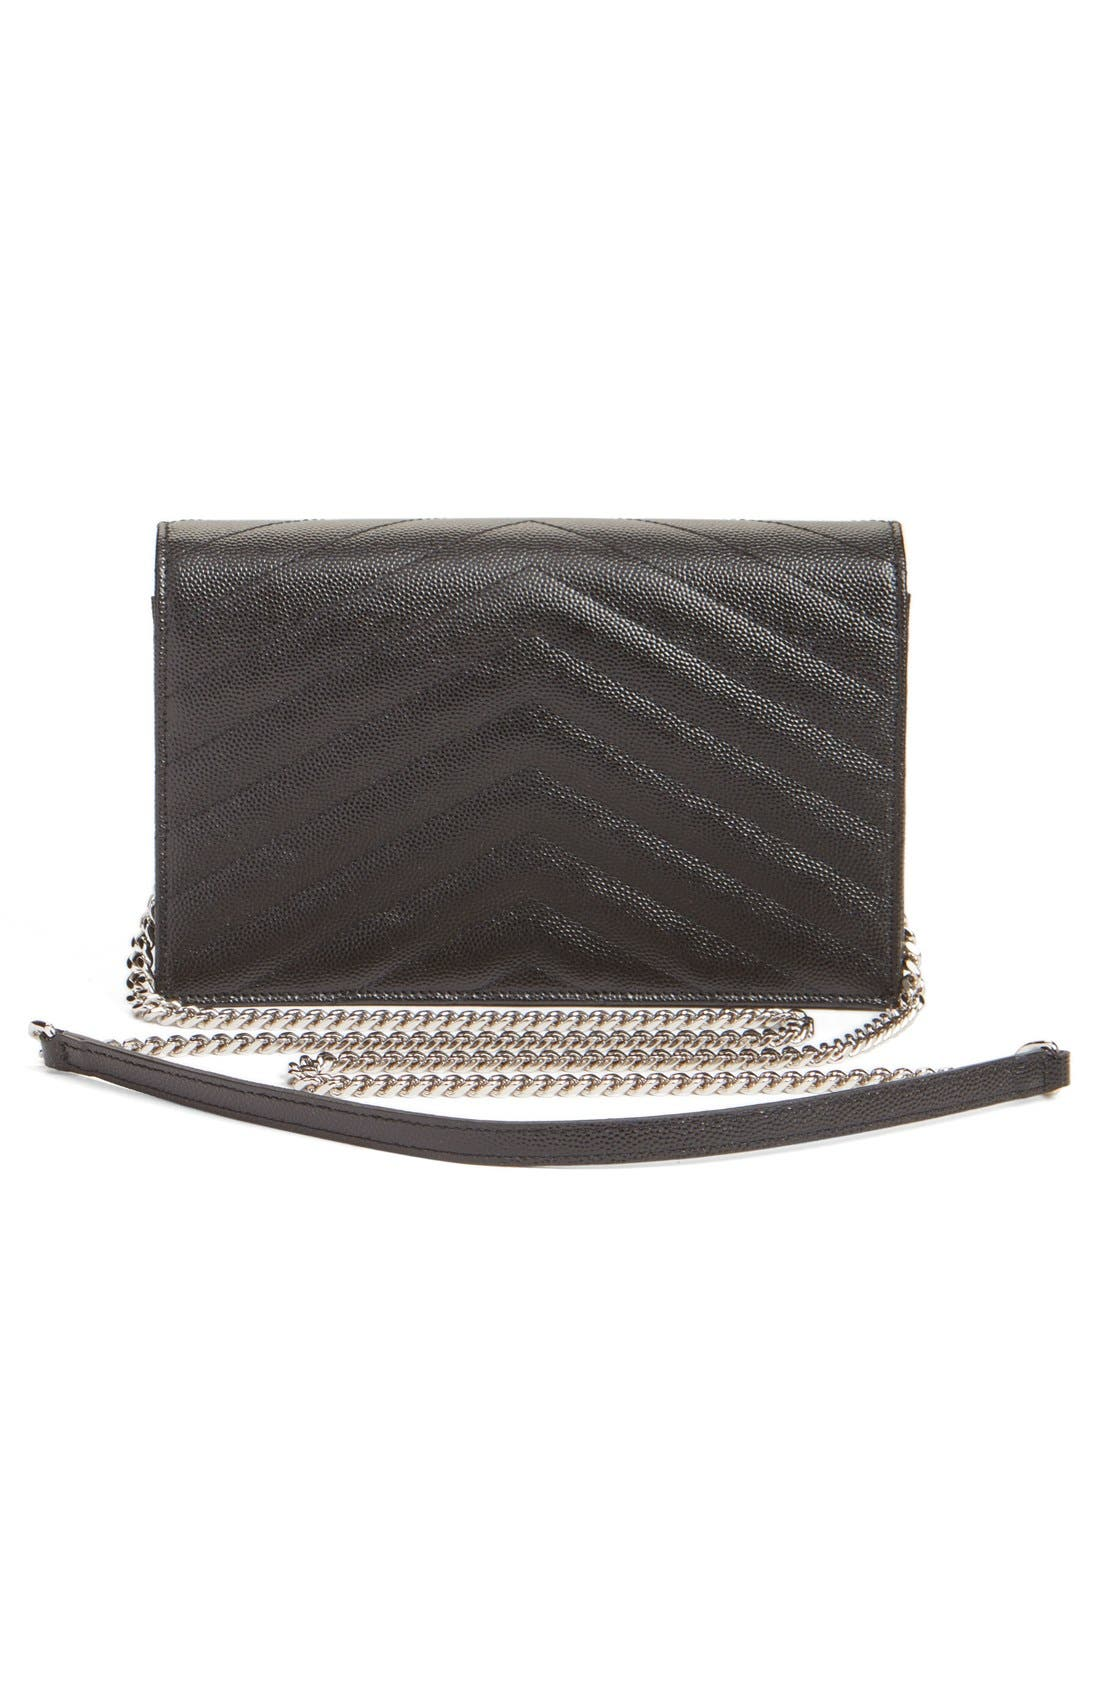 Quilted Calfskin Leather Wallet on a Chain,                             Alternate thumbnail 9, color,                             NOIR